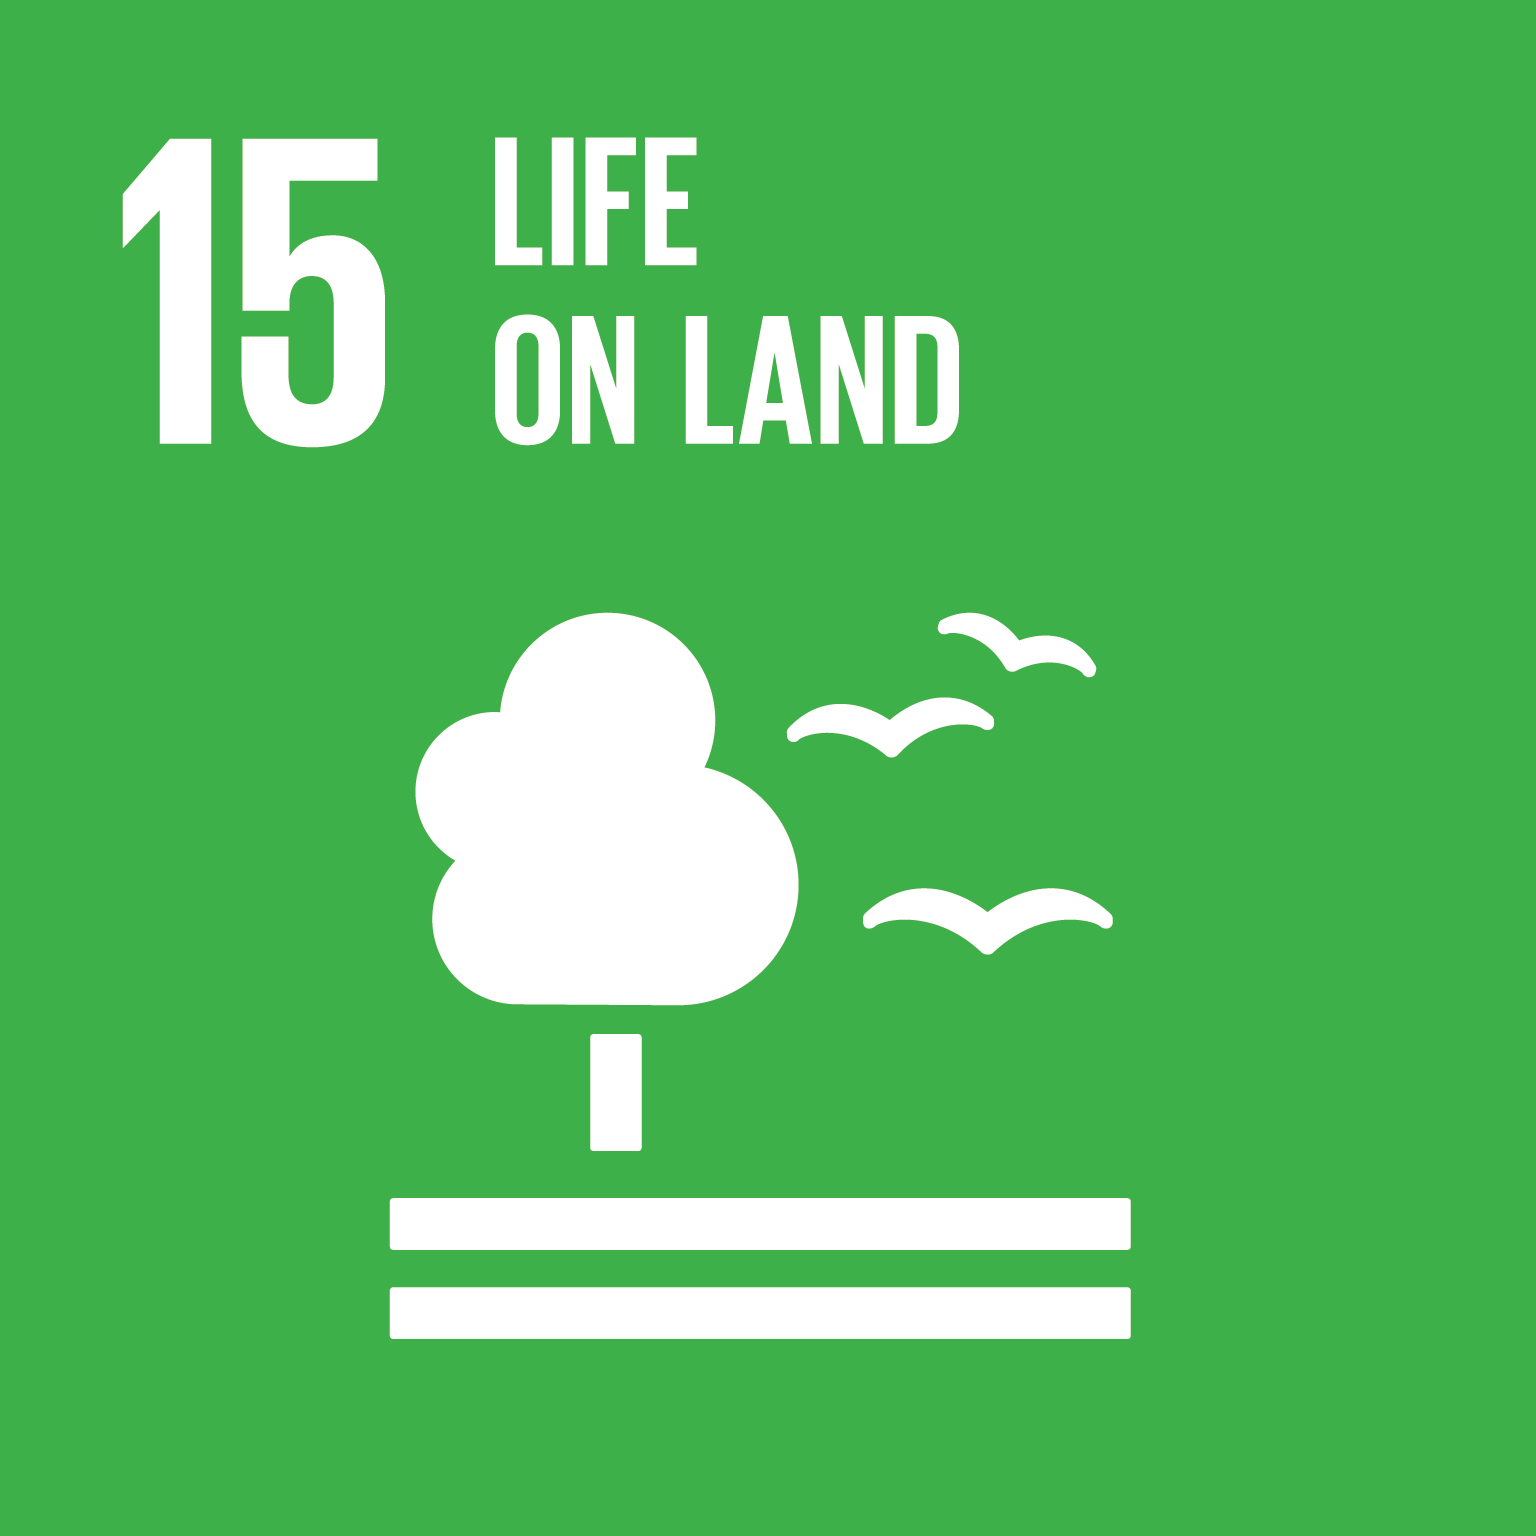 Image of Goal 15 - Life on Land